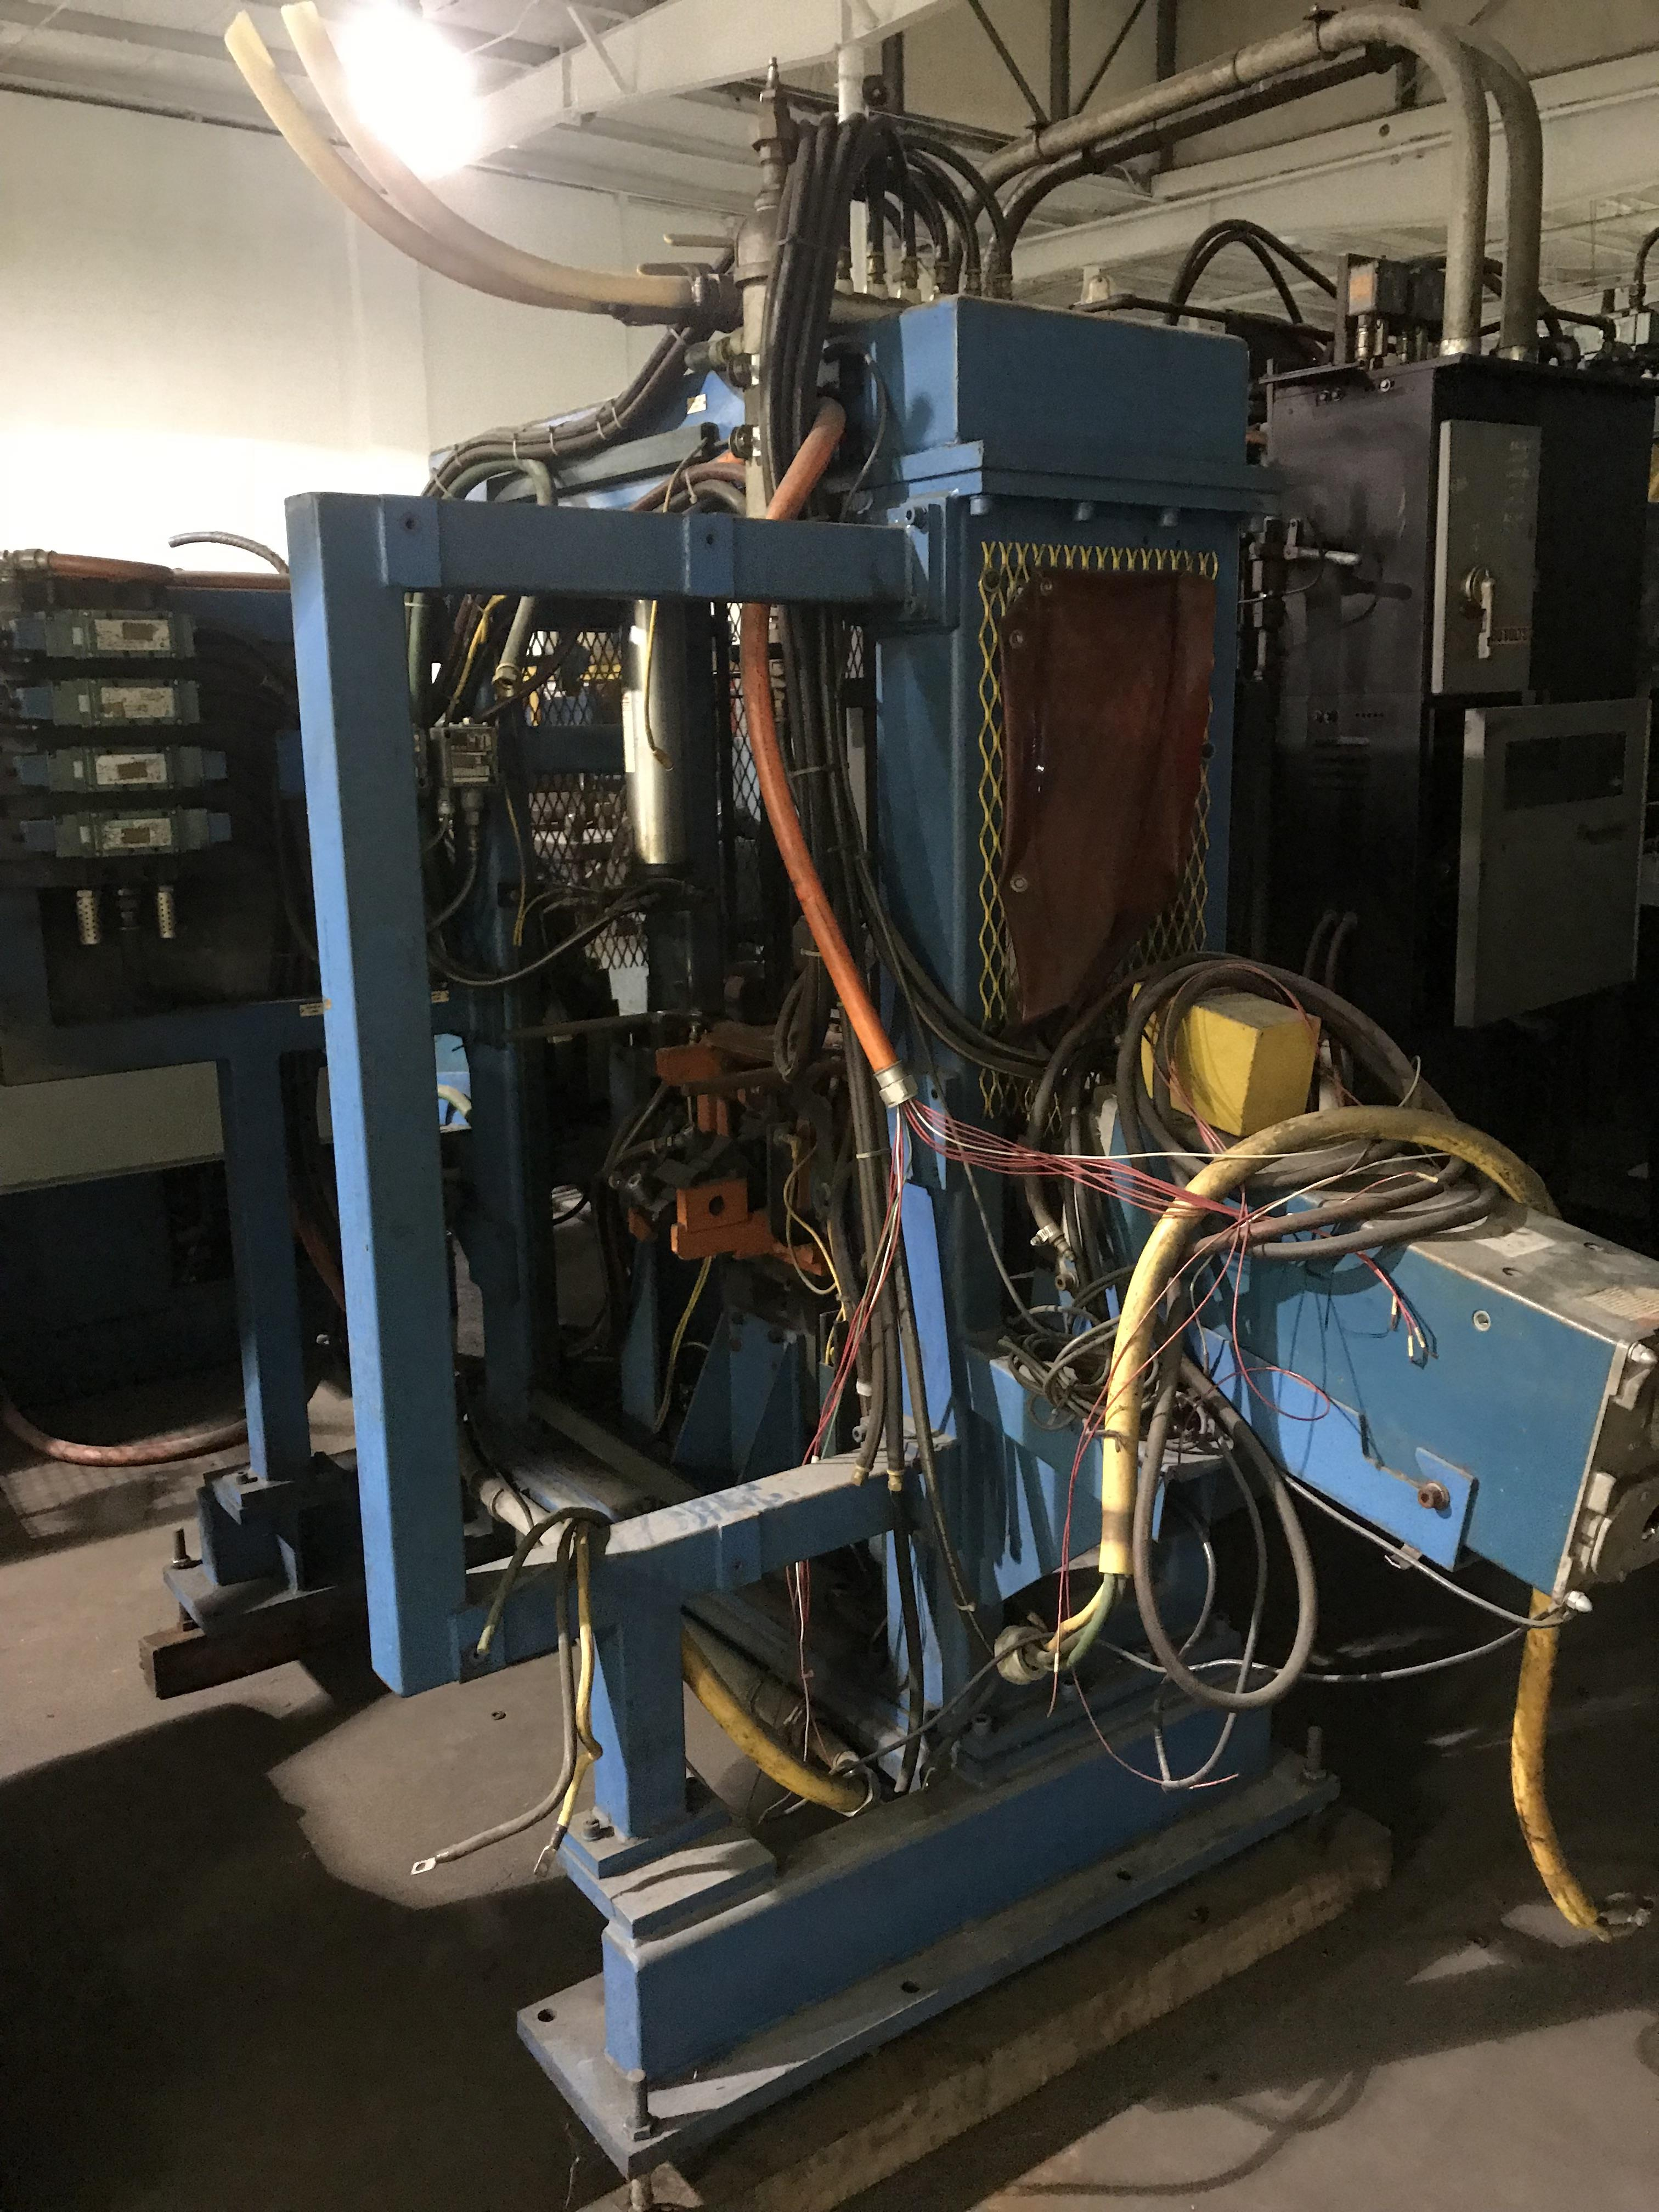 Lot 52 - Pentier Welding Cell, Marine City Location, C3 Equipment loading charge $200.00